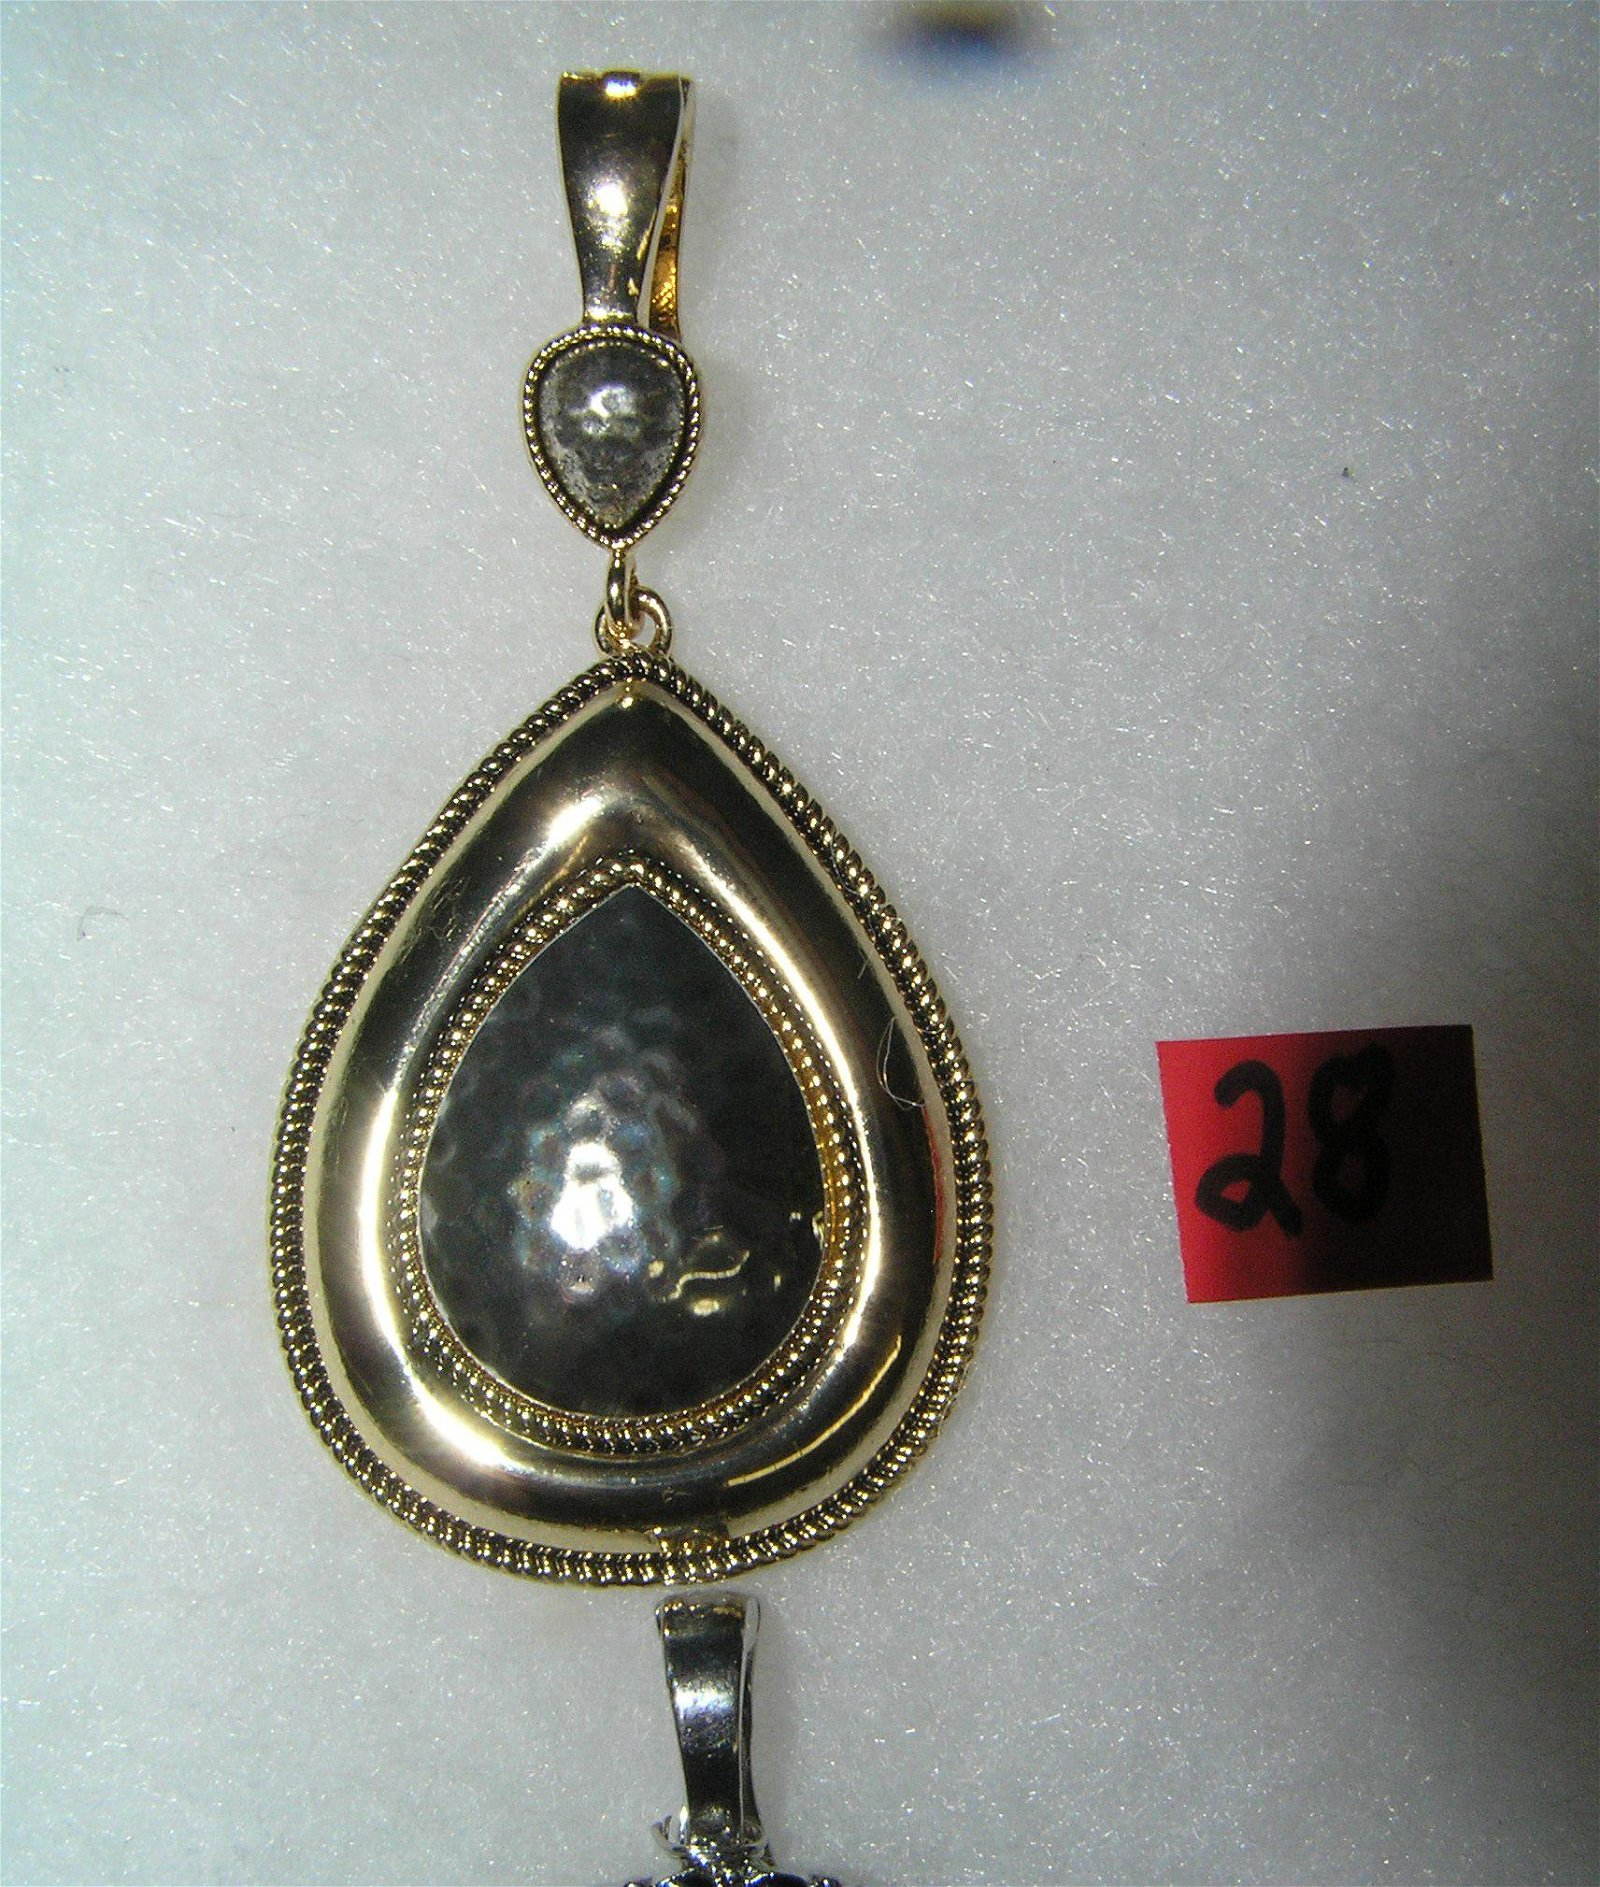 Vintage necklace pendant clasp marked RRN